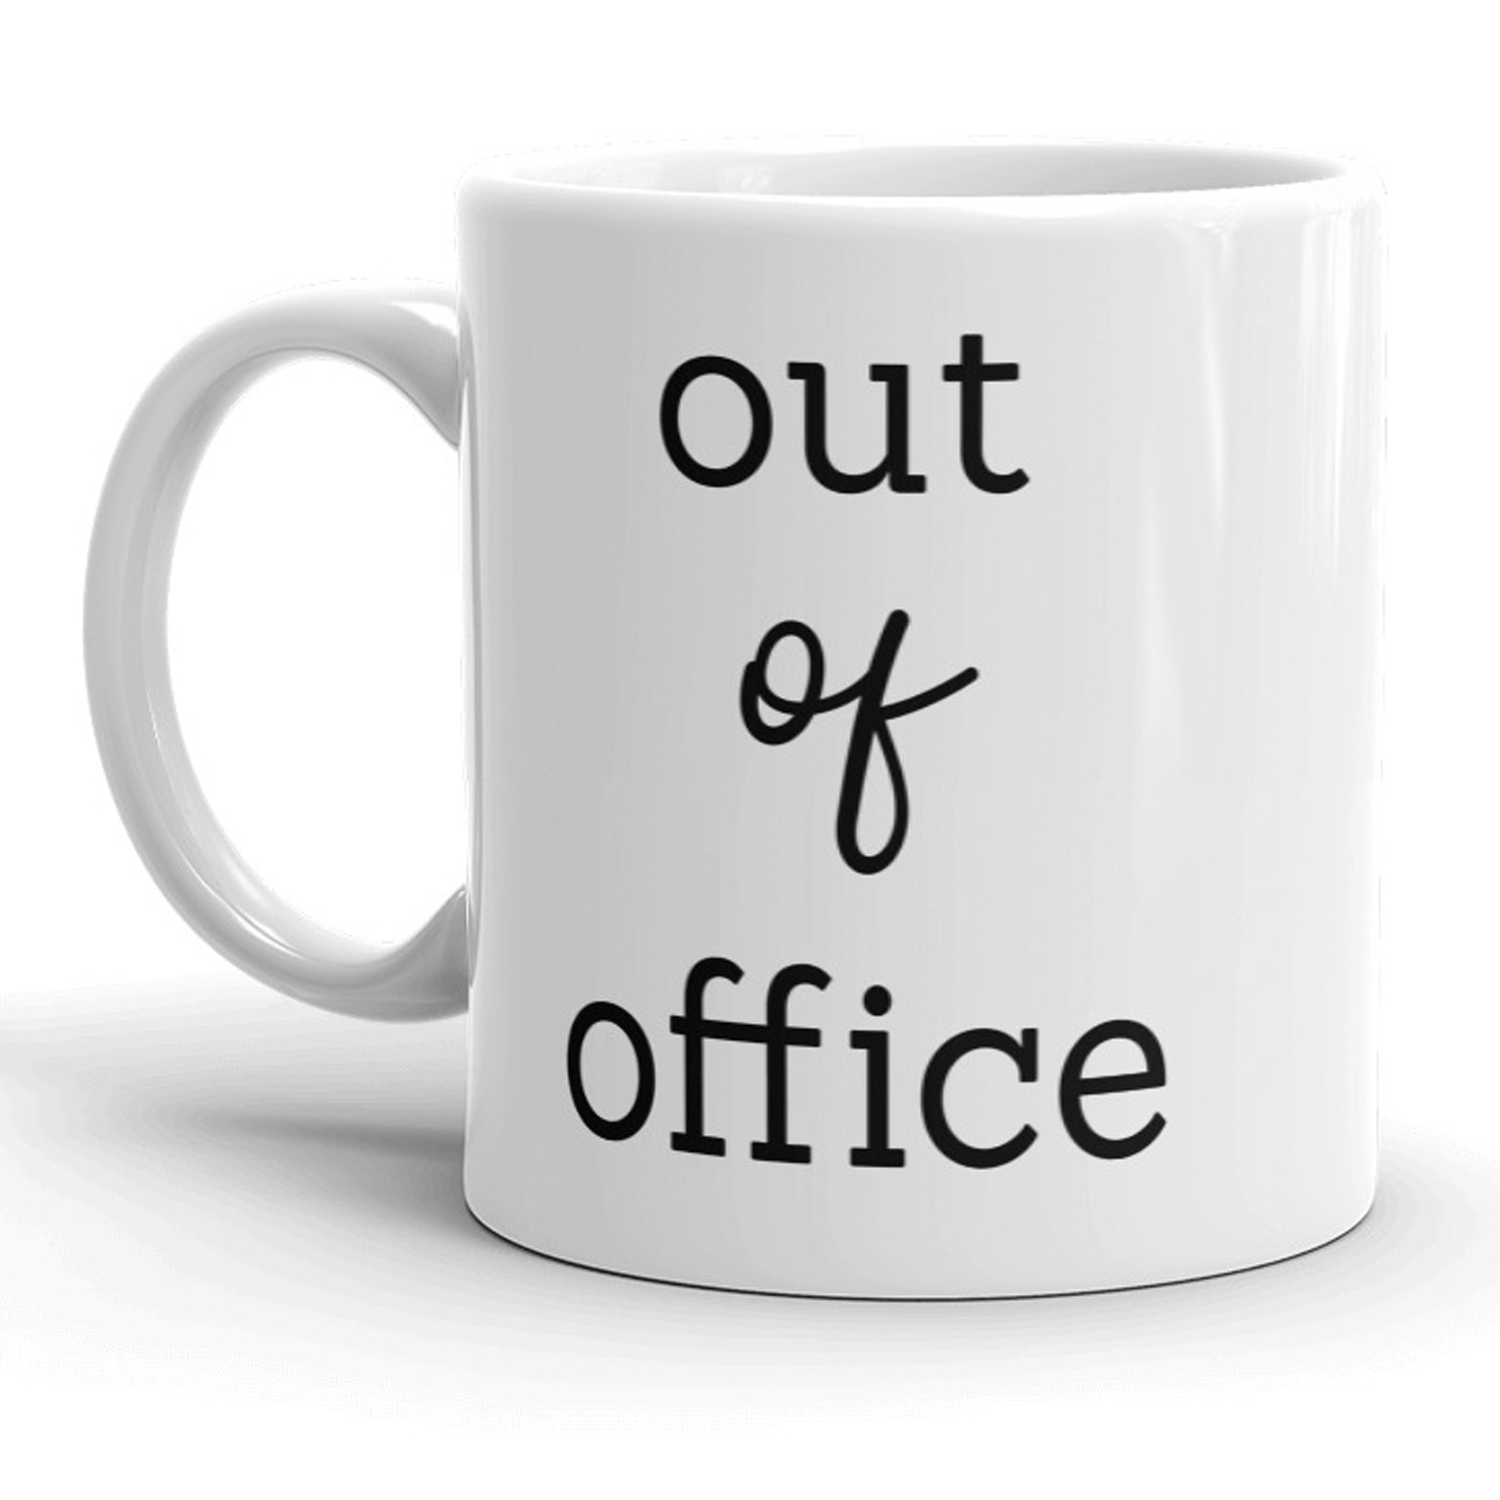 Funny Work Mugs Details About Out Of Office Mug Funny Work Vacation Sick Day Coffee Cup 11oz